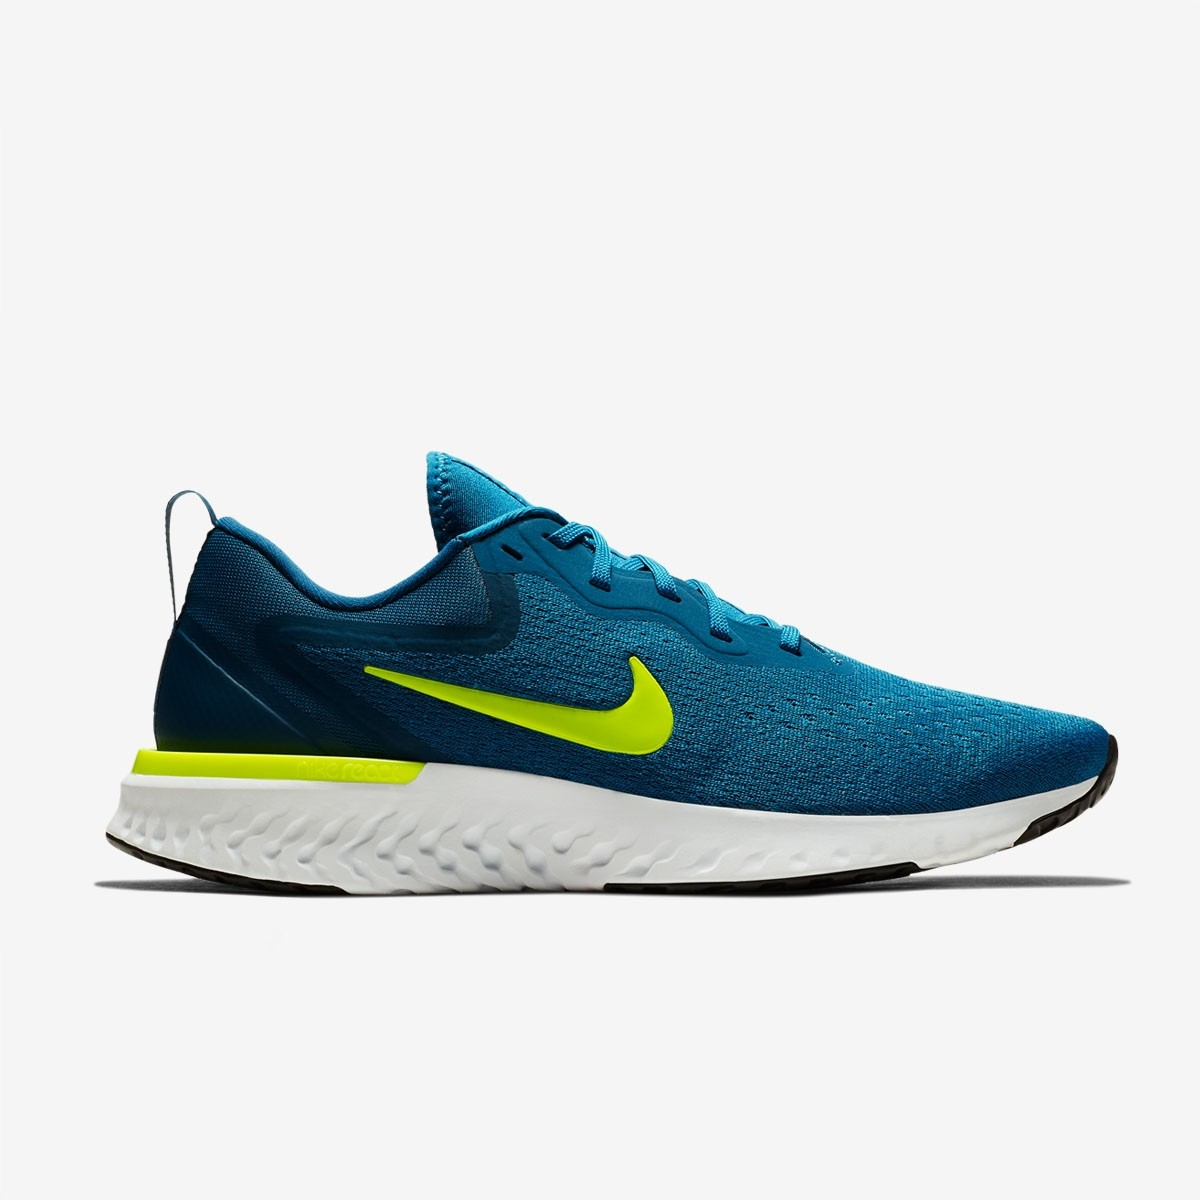 5a82430d7bb94 Buy Nike Odyssey React  Blue Neon  Basketball shoes   sneakers